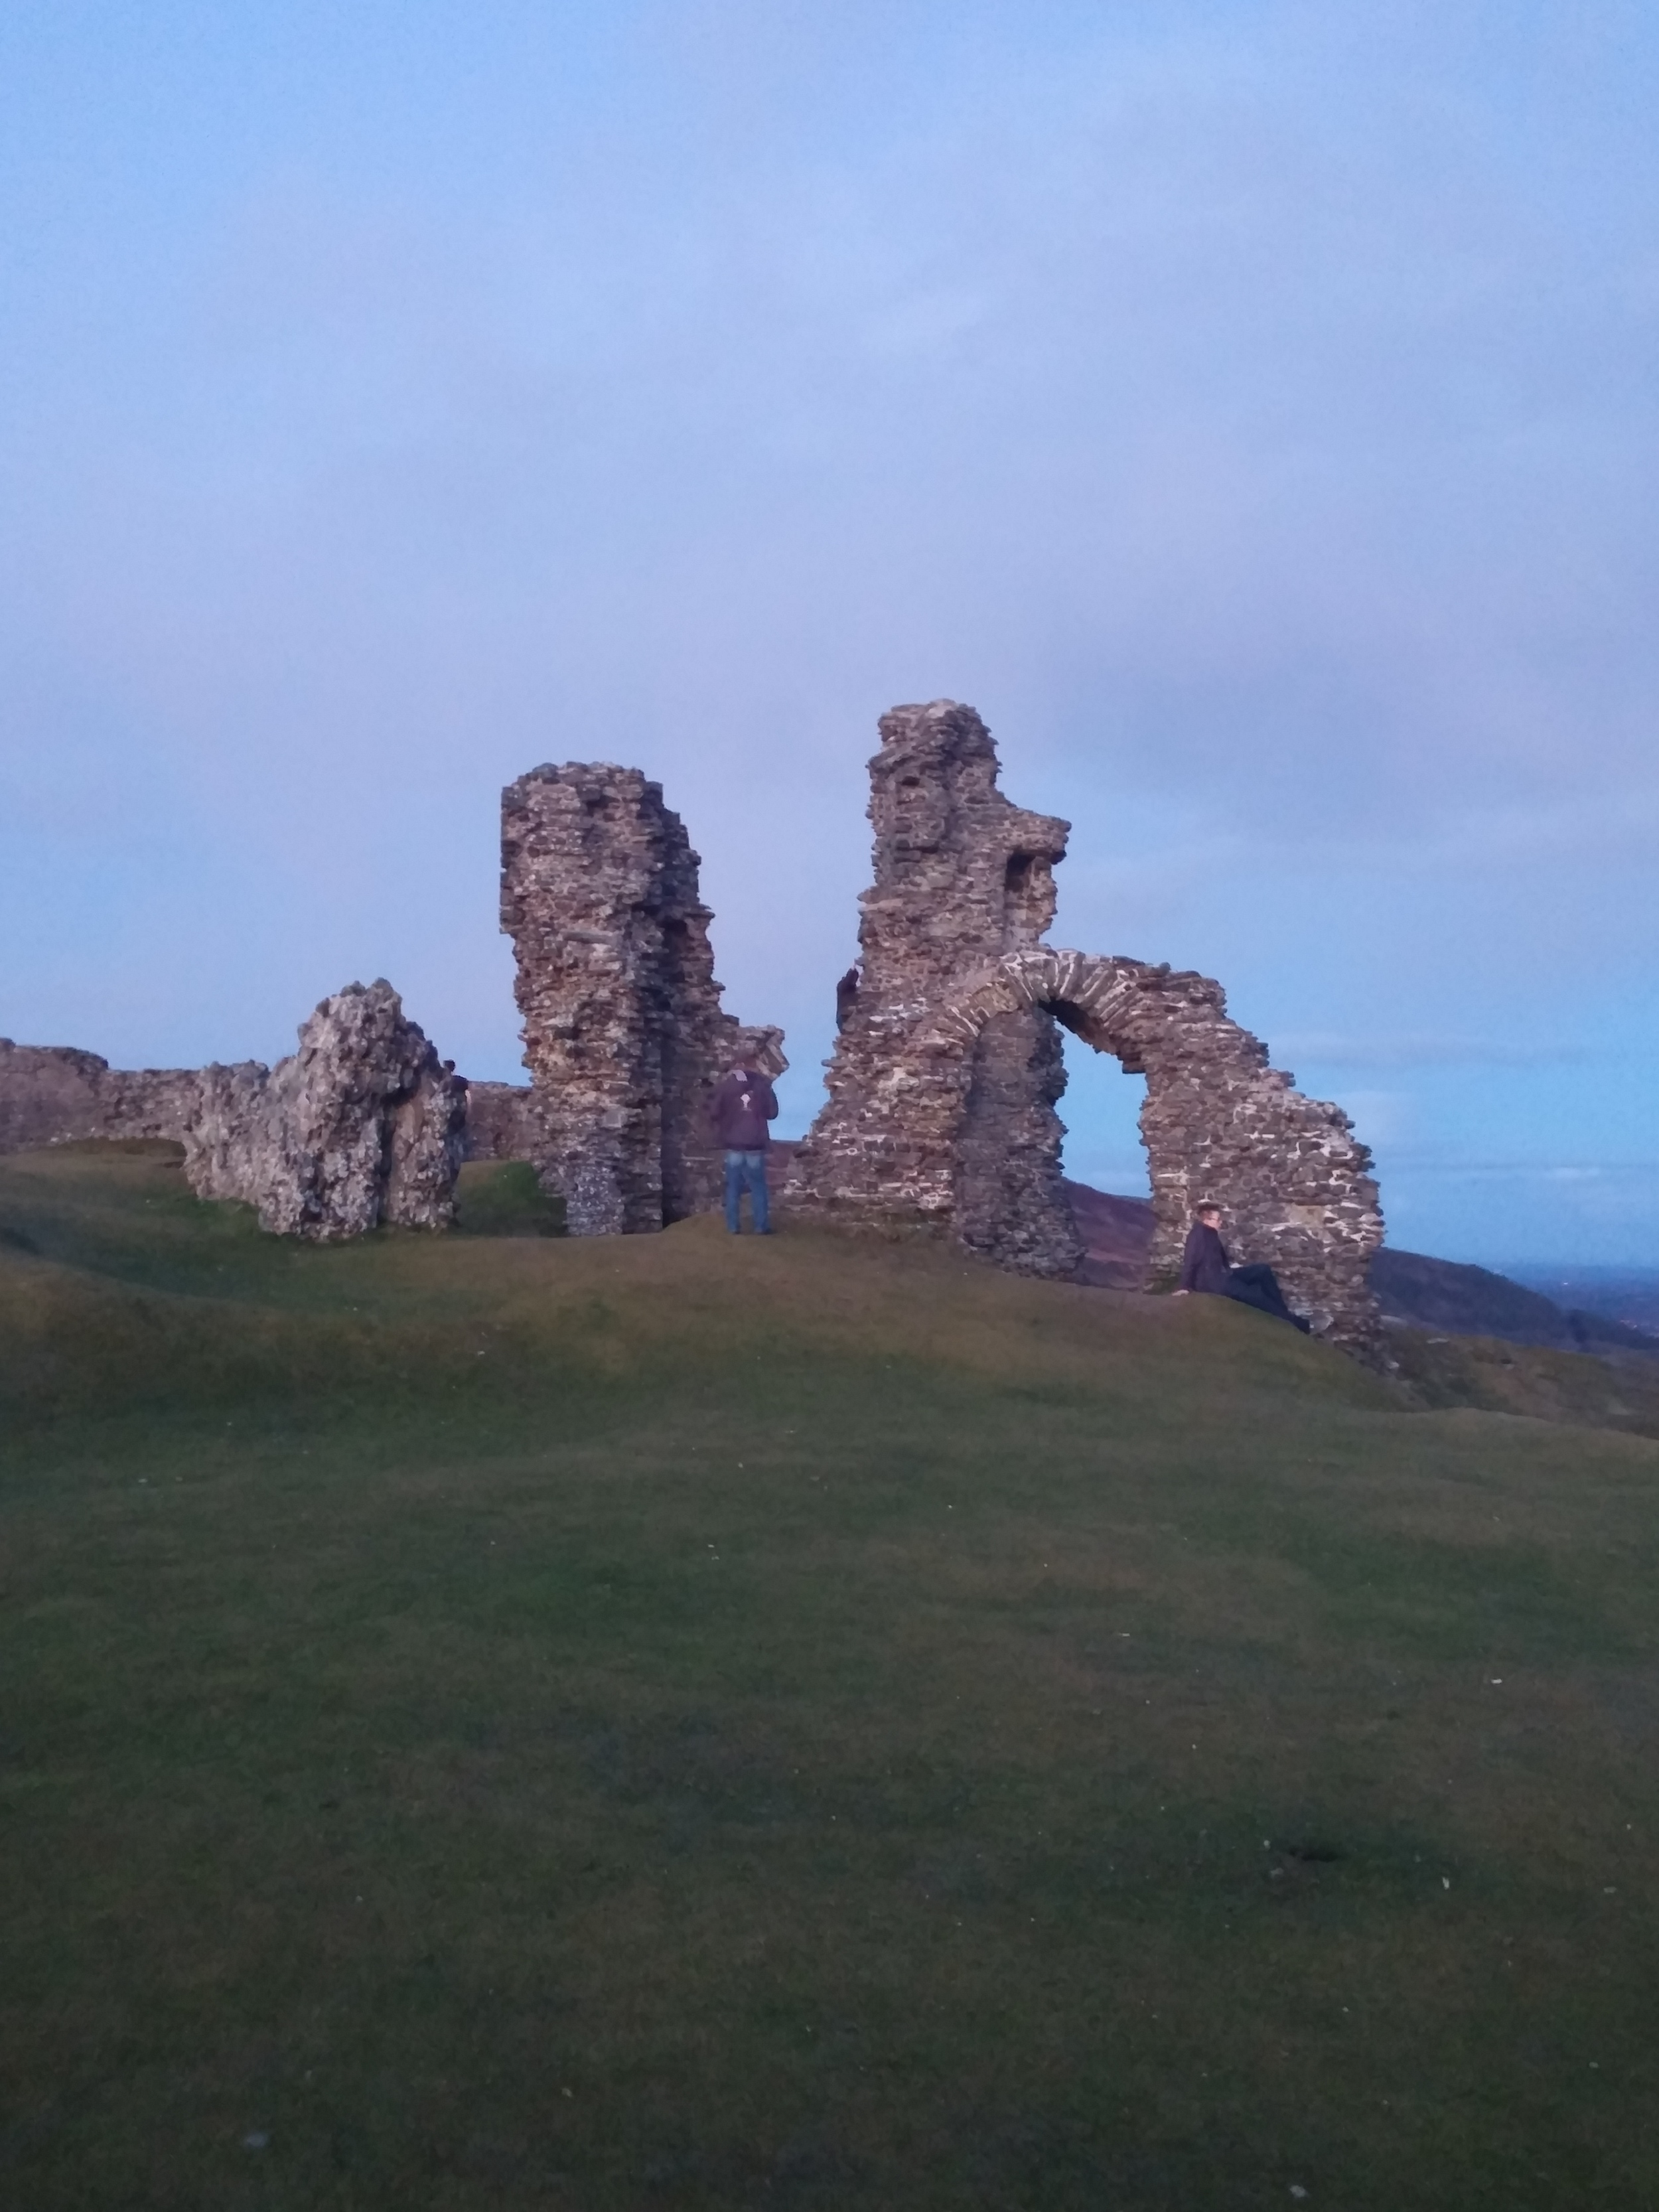 On the spur of the moment, we took a brisk hike to the 800-year-old ruins on top of a mountain in Llangollen during our stay in Wales. Here is what remains of the once majestic castle.